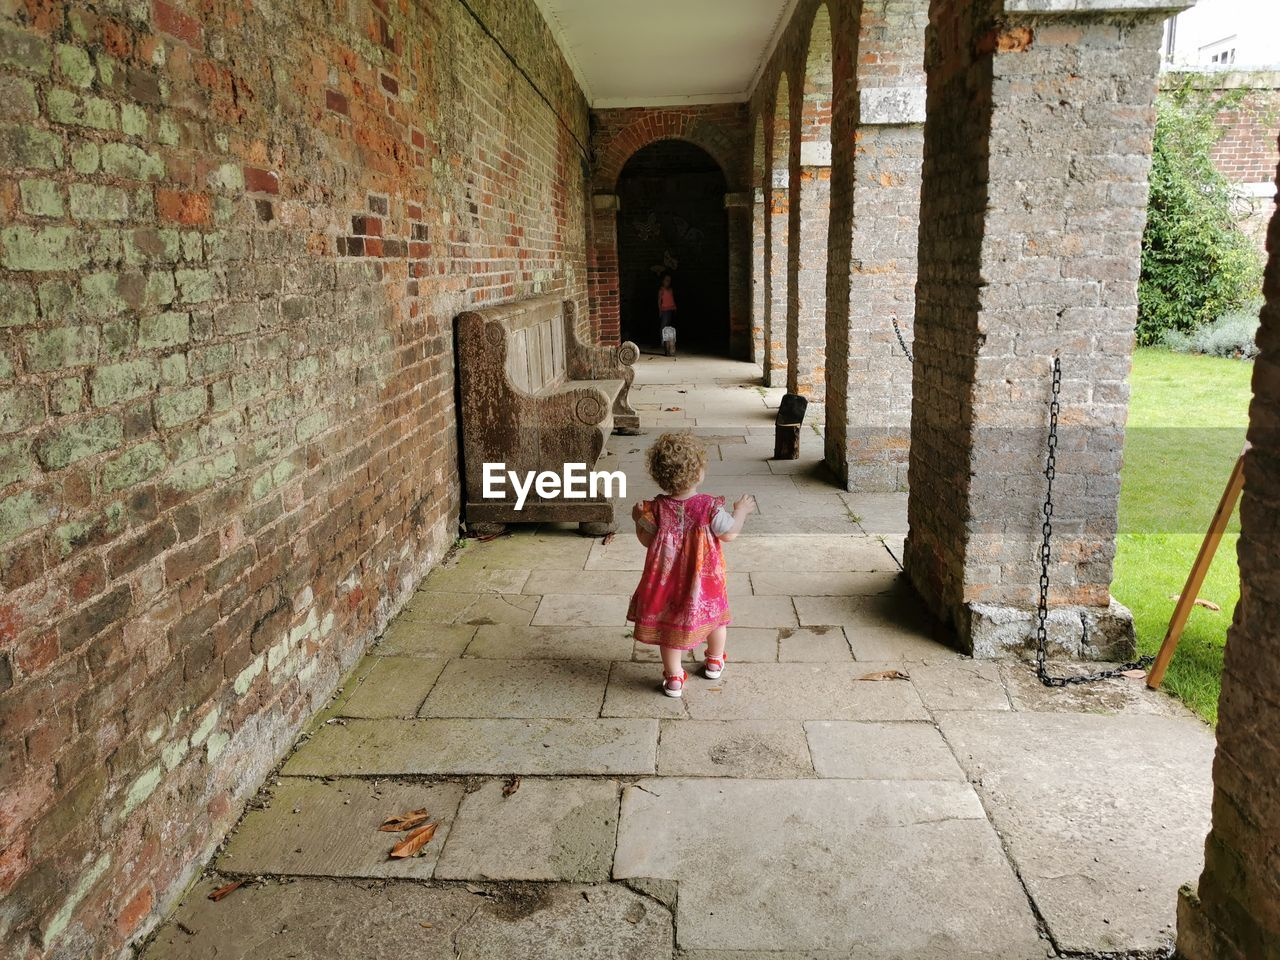 Rear view of girl walking independently though a courtyard